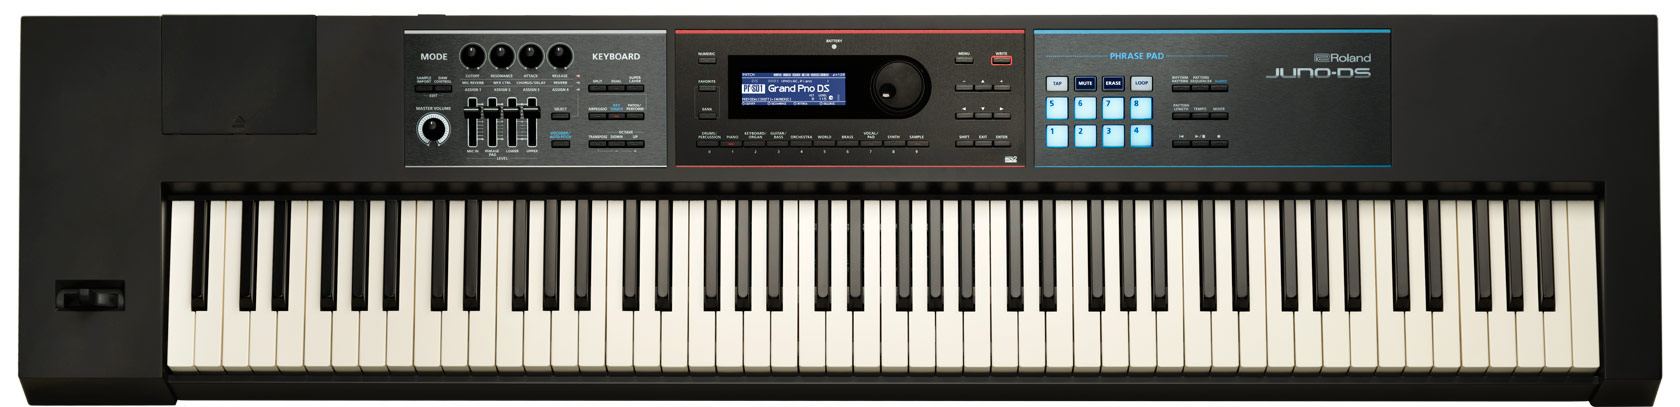 Roland Juno DS 88 key (payment 2 of 2) AVAILABLE